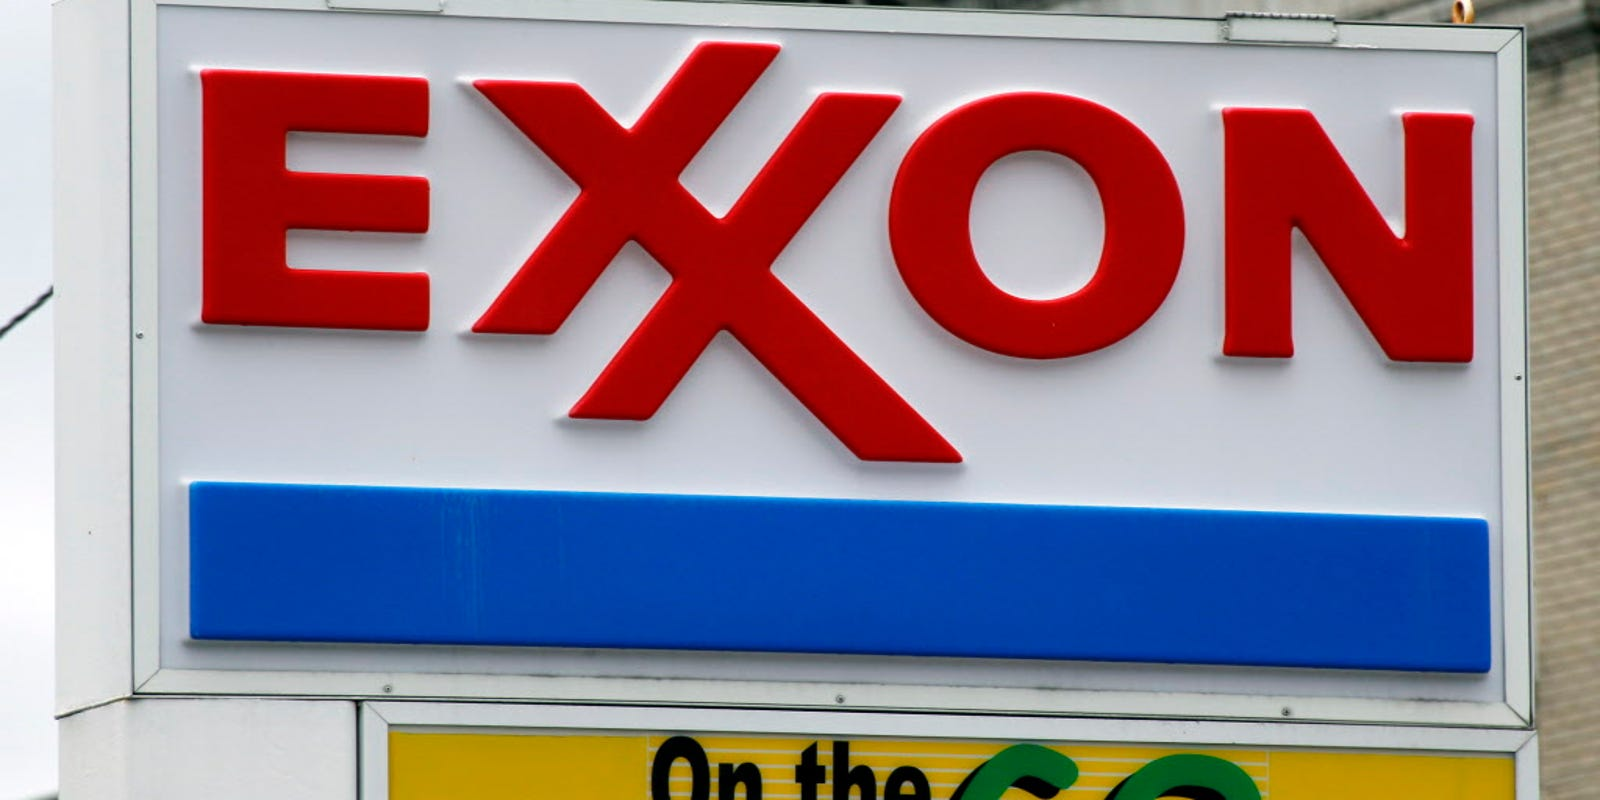 Ask Matt Is Now The Time To Buy Exxon Mobil